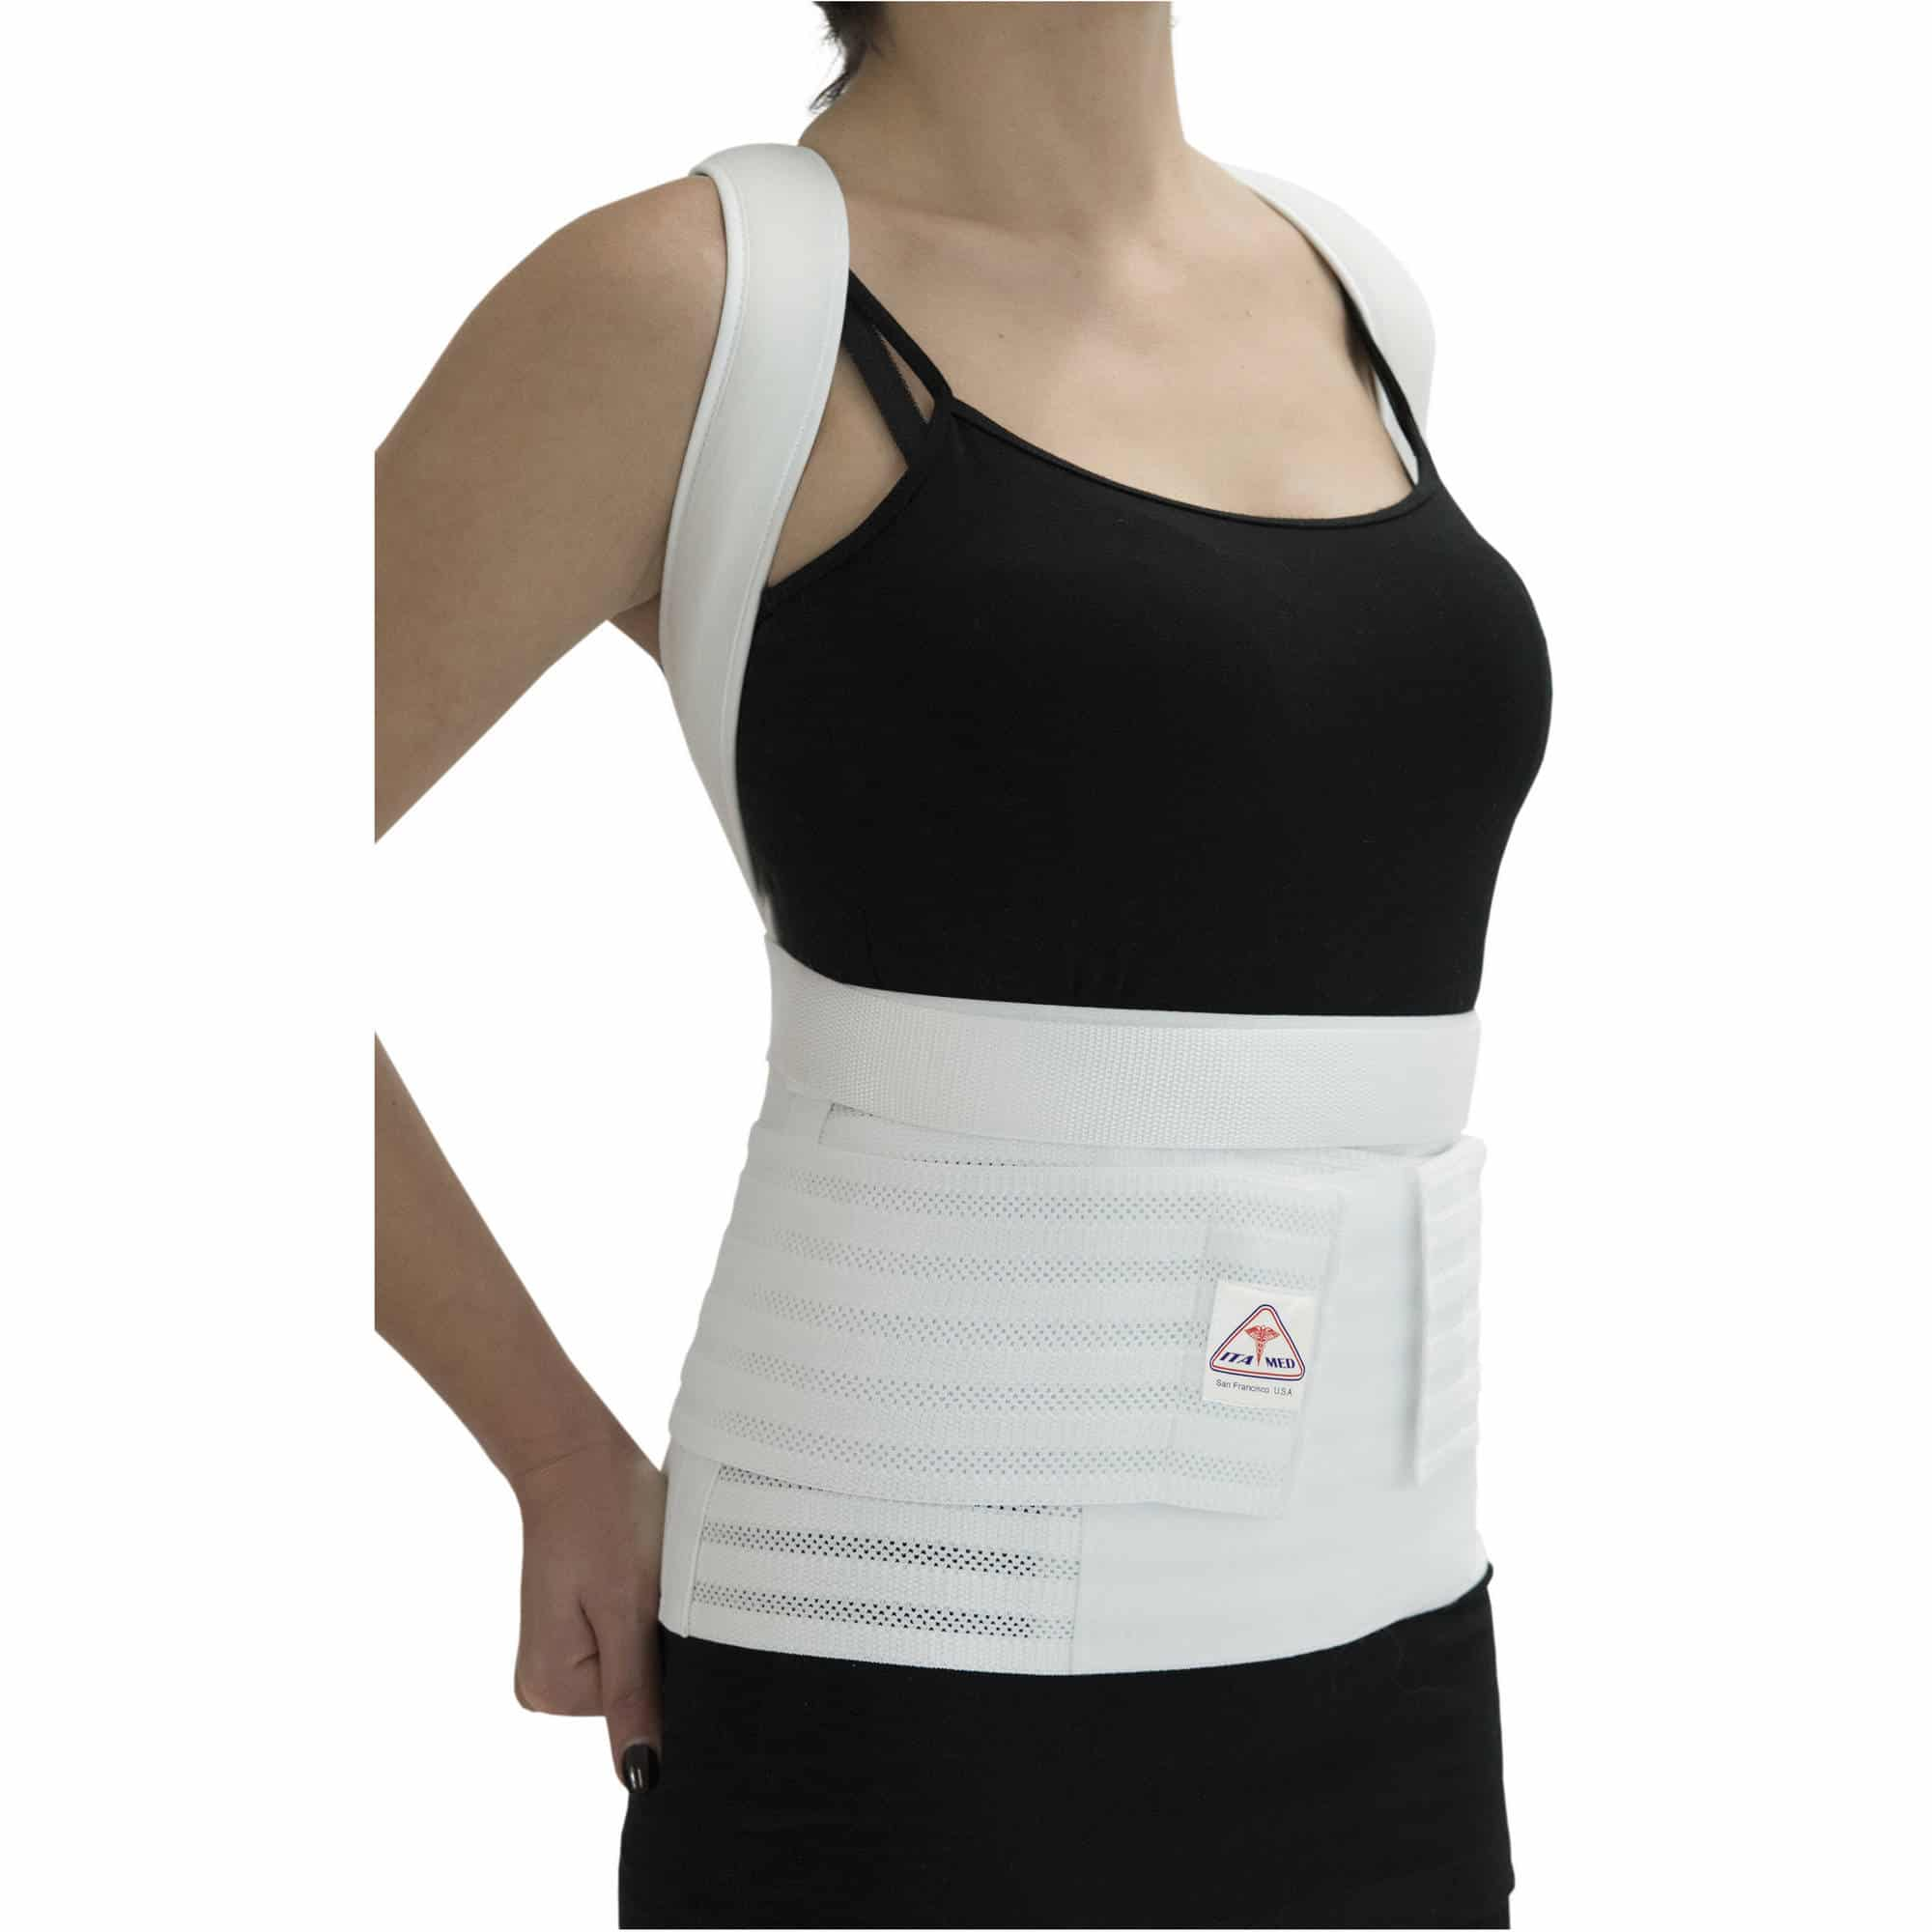 ITA-MED Posture Corrector for Women